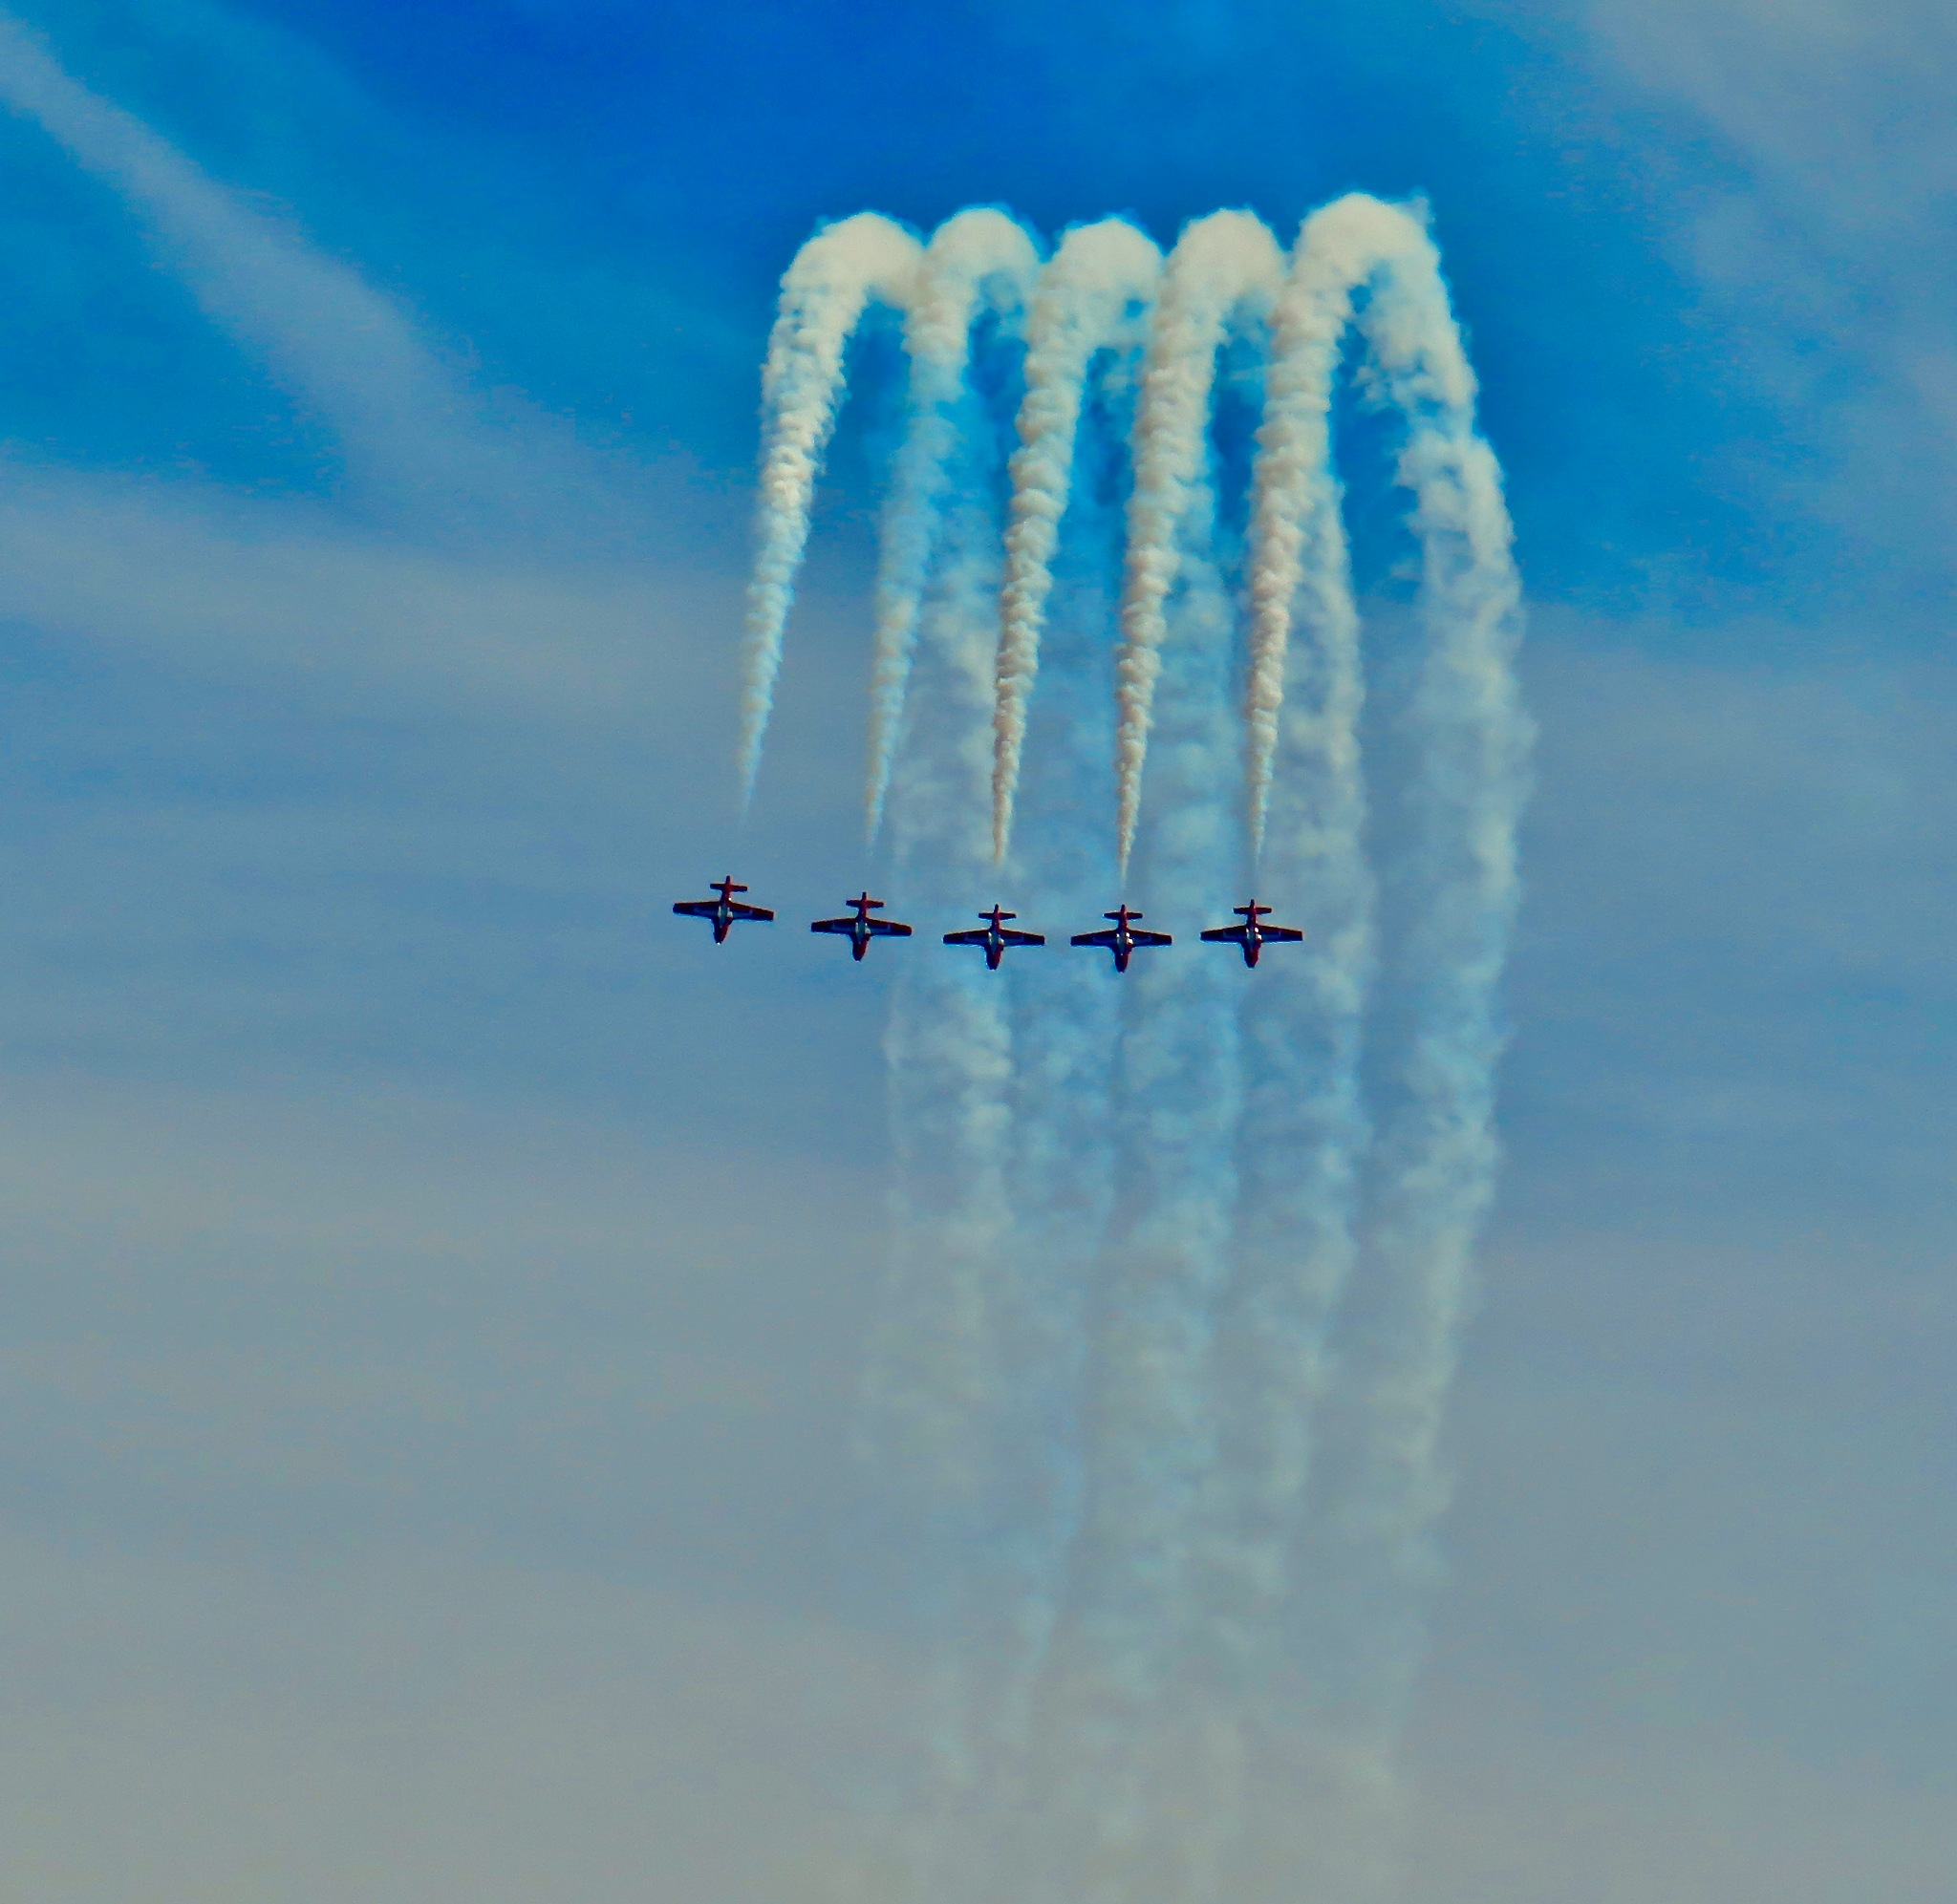 the fly boys are back in town today for the annual air show !! by David Devion